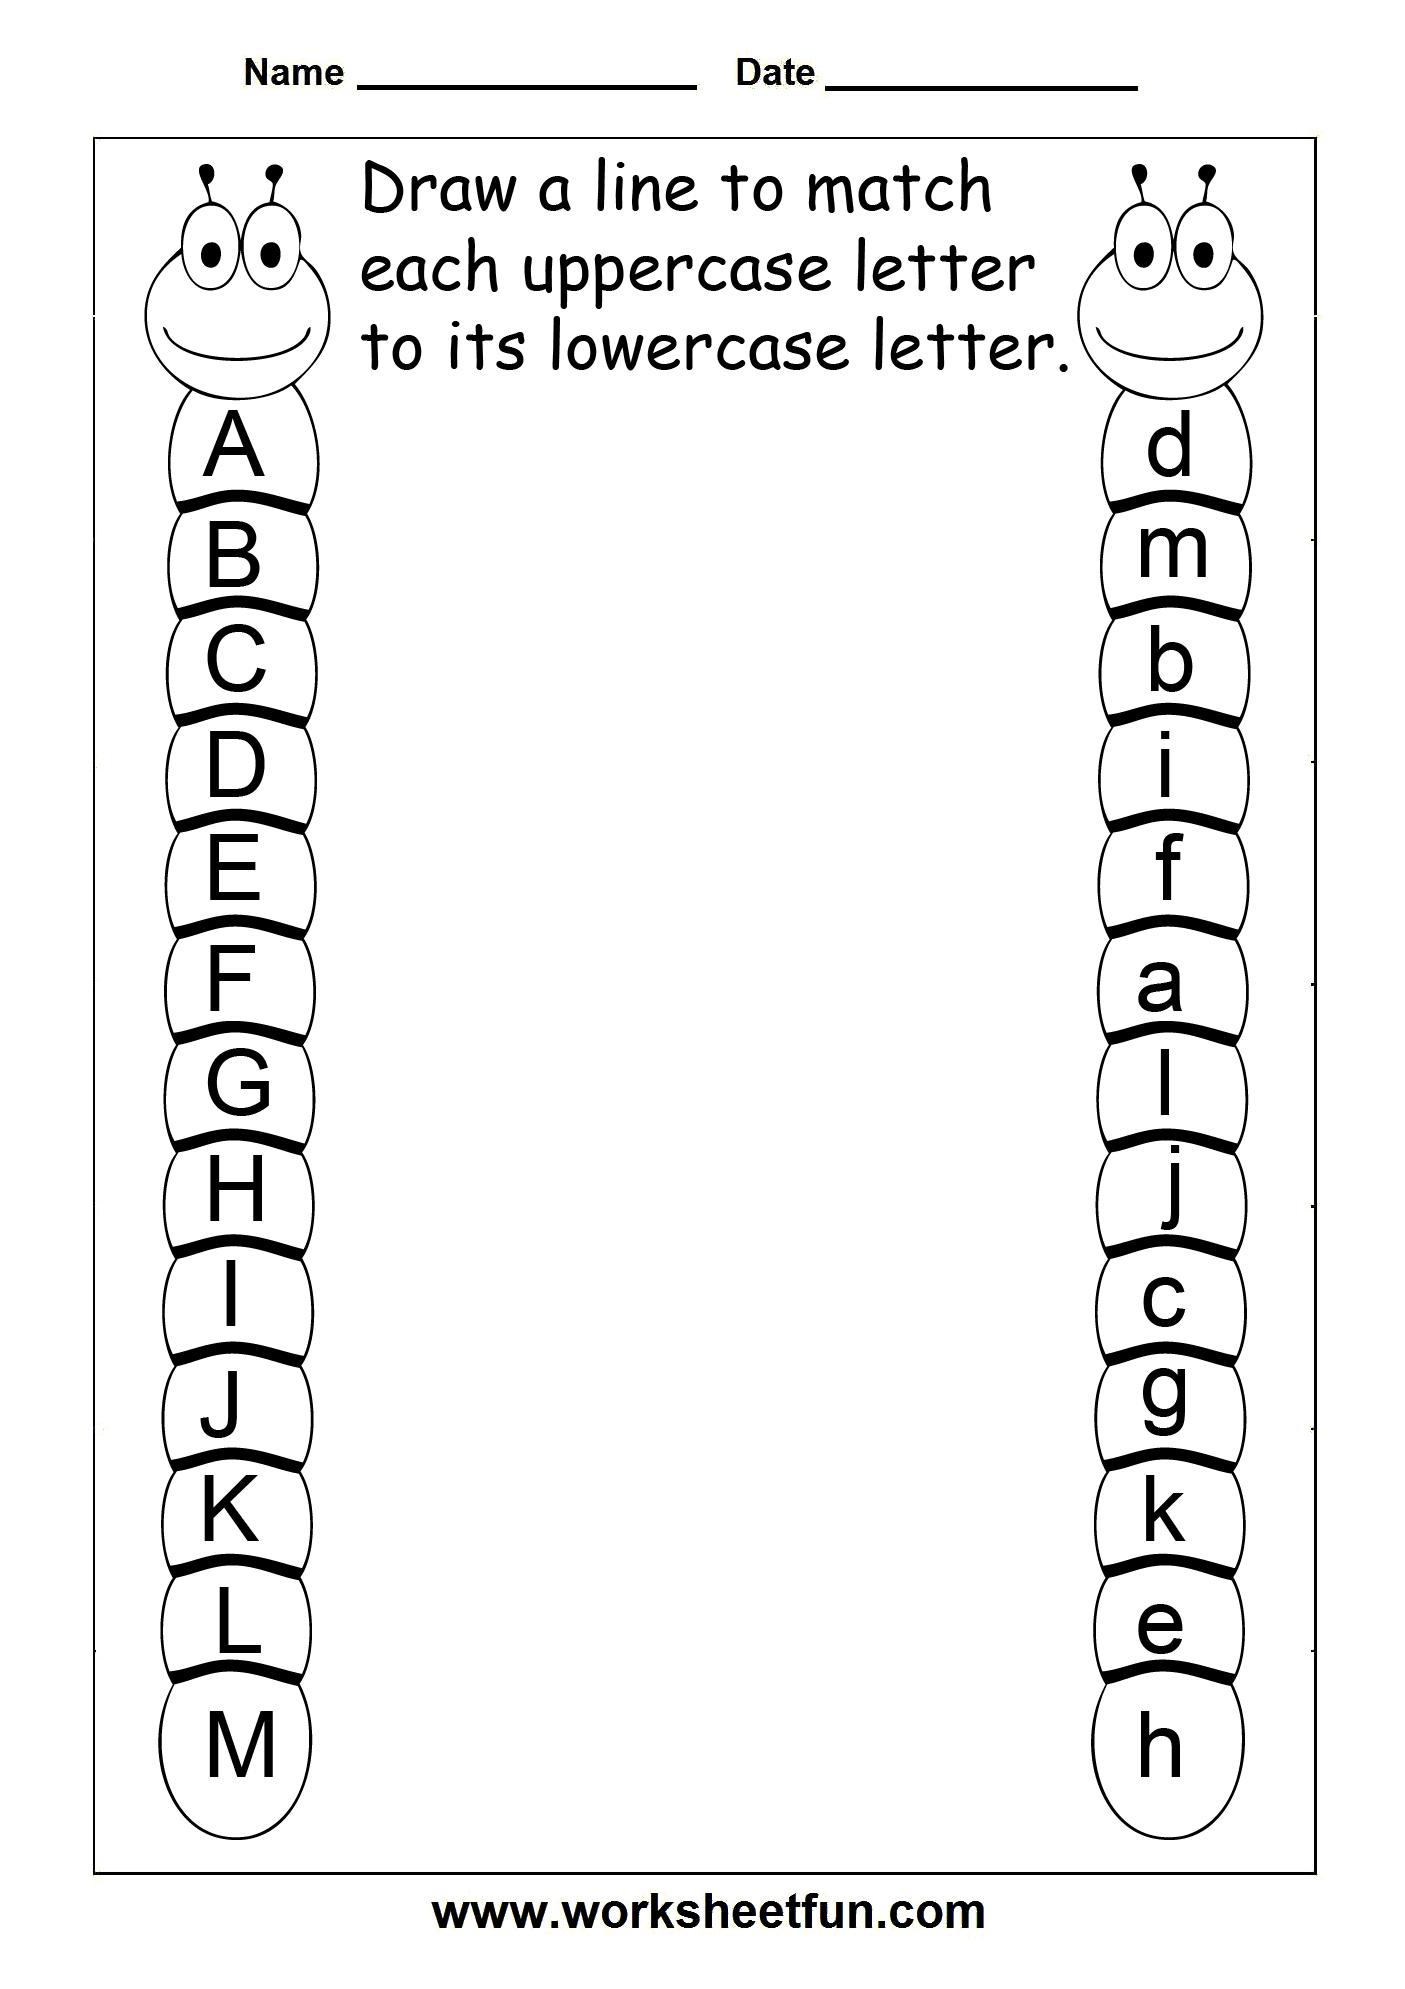 Weirdmailus  Marvellous  Images About Work Worksheet On Pinterest  Hidden Pictures  With Lovable  Images About Work Worksheet On Pinterest  Hidden Pictures Color By Numbers And Puzzles With Extraordinary English Worksheets For Year  Also Zero Multiplication Worksheet In Addition Printable Reading Comprehension Worksheets For Rd Grade And English Worksheets For Grade  Free Printable As Well As Math Fact Worksheets Rd Grade Additionally Math Worksheets For Th Grade Fractions From Pinterestcom With Weirdmailus  Lovable  Images About Work Worksheet On Pinterest  Hidden Pictures  With Extraordinary  Images About Work Worksheet On Pinterest  Hidden Pictures Color By Numbers And Puzzles And Marvellous English Worksheets For Year  Also Zero Multiplication Worksheet In Addition Printable Reading Comprehension Worksheets For Rd Grade From Pinterestcom